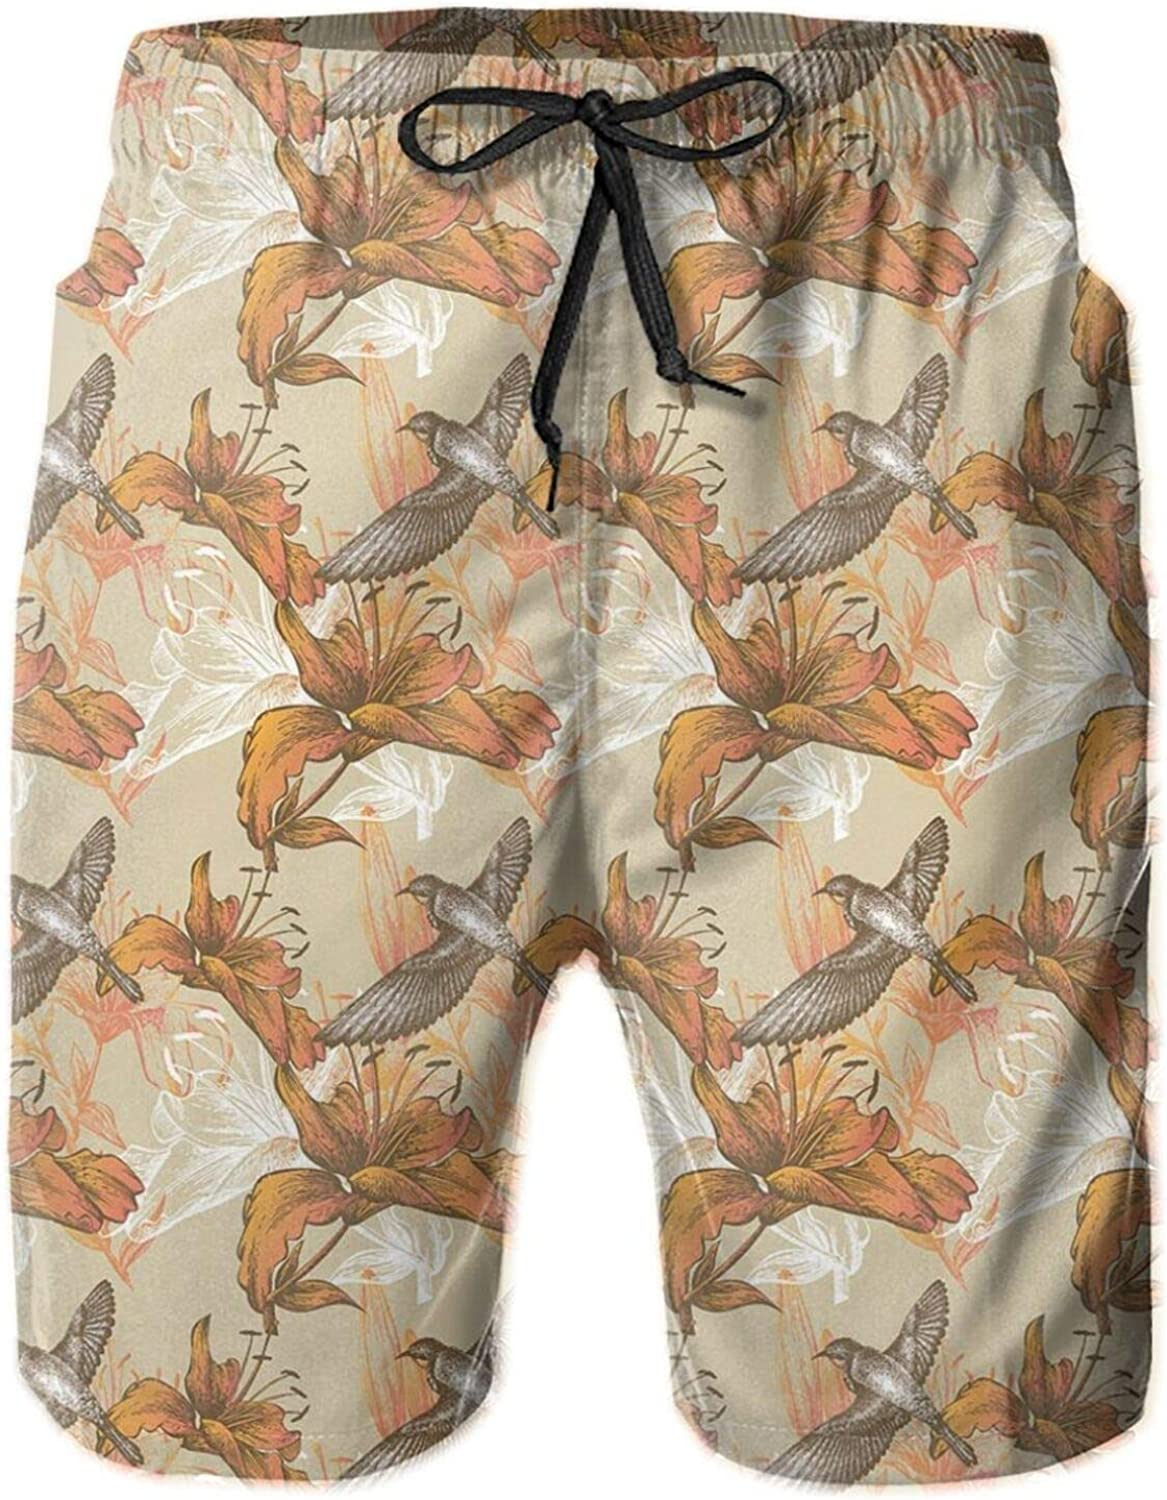 Lilies and Flying Birds Romantic Flowers of Spring Season Valentines Day Sketch Printed Beach Shorts for Men Swim Trucks Mesh Lining,XXL